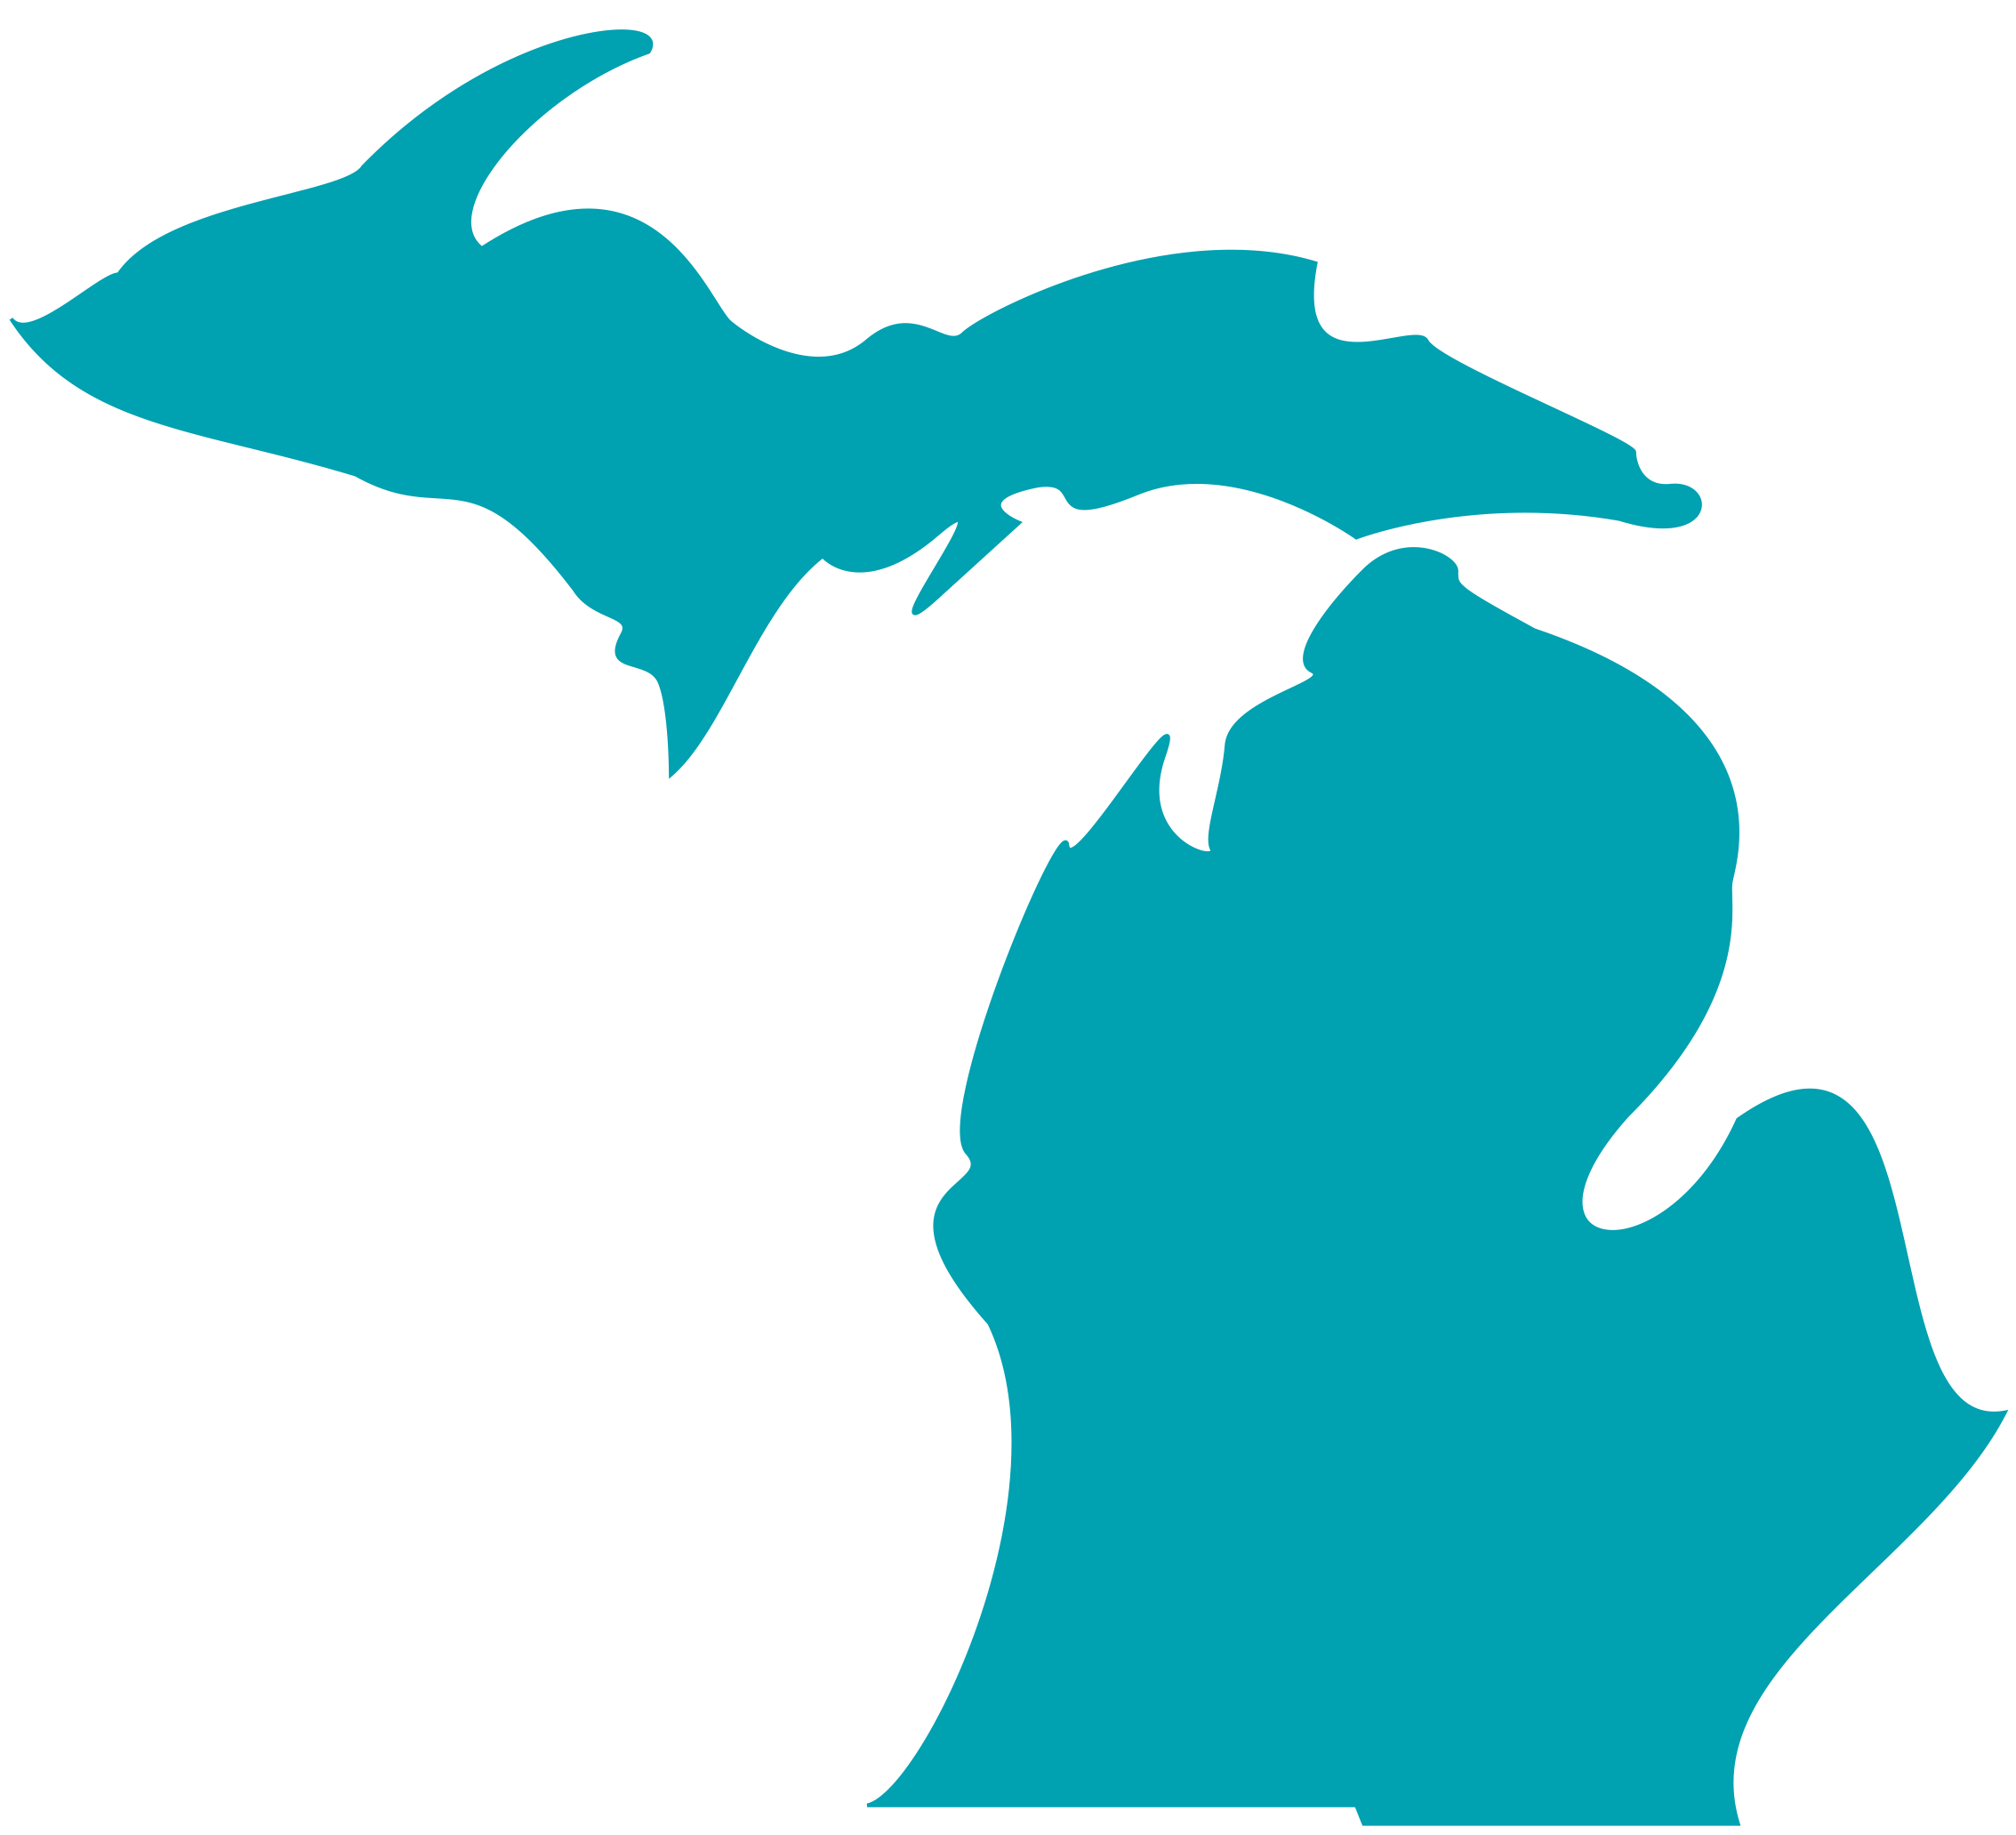 Mittens clipart teal.  collection of michigan